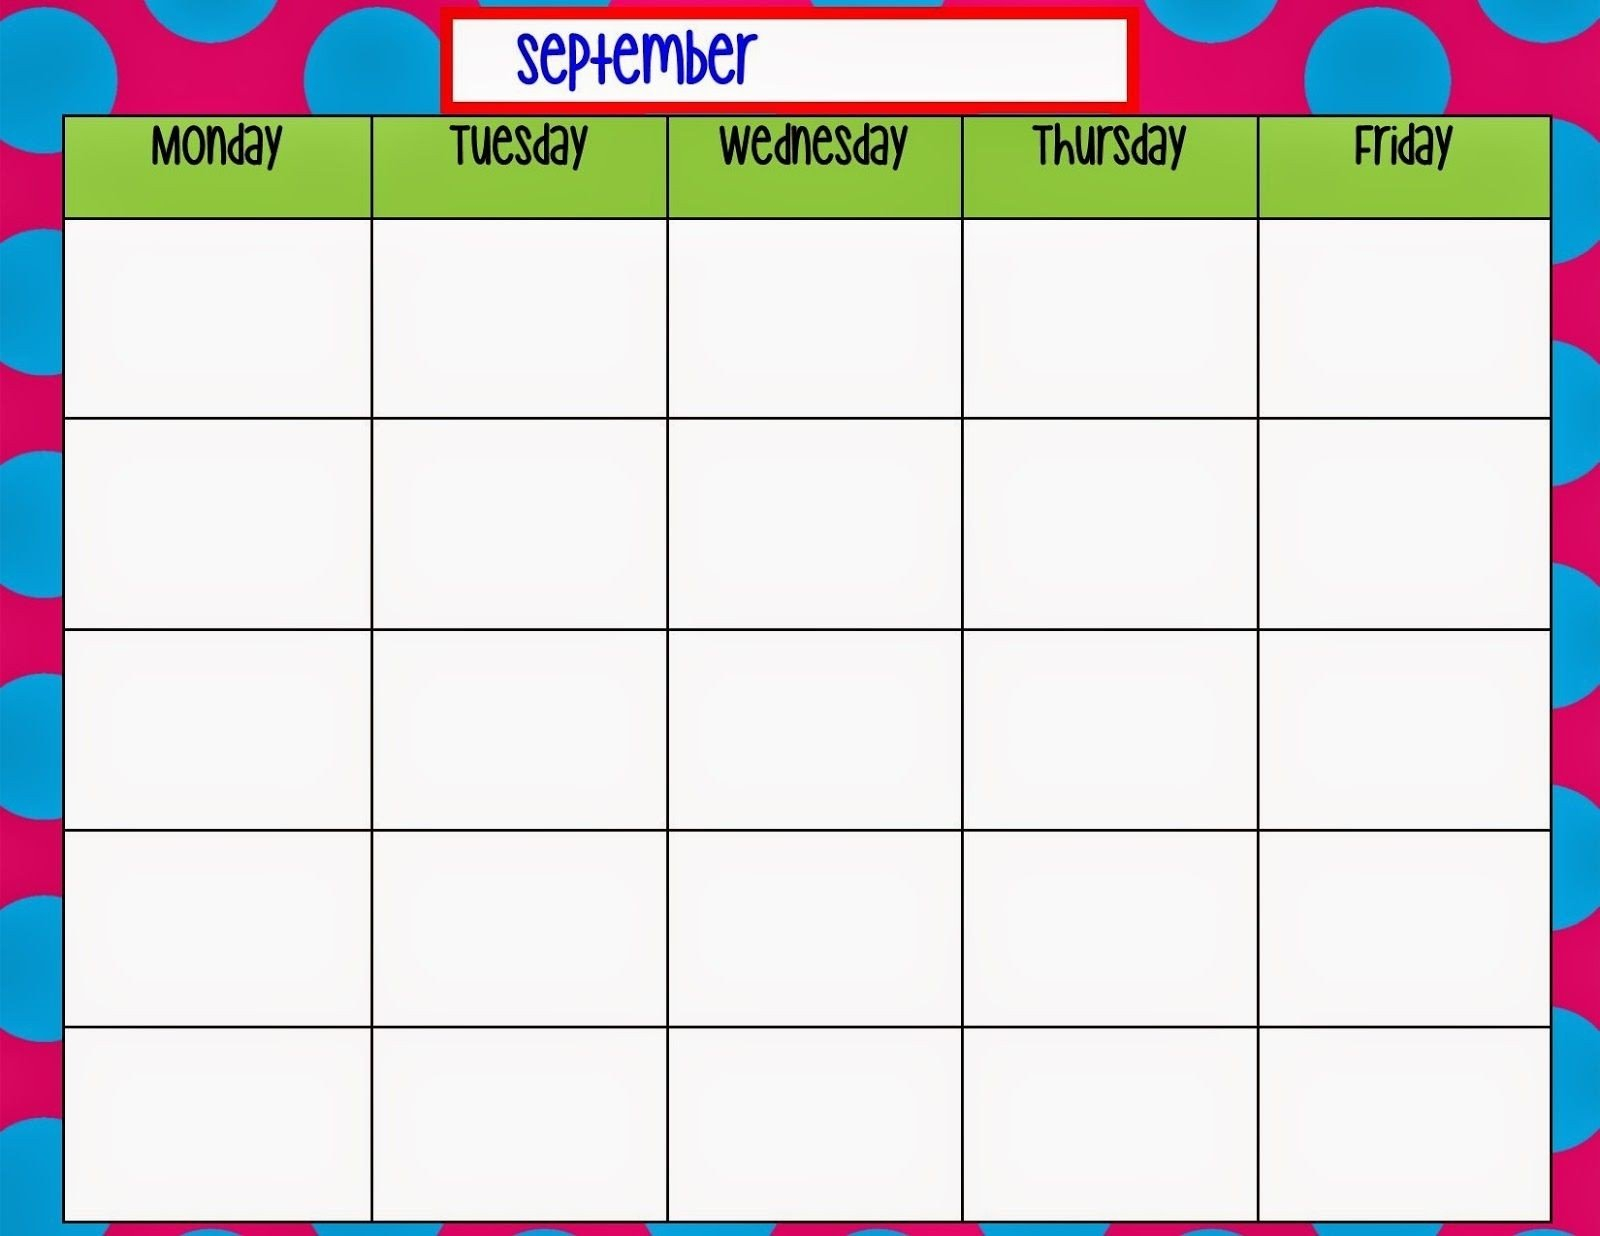 Monday To Friday Schedule Template | Calendar Template Template Momday To Friday